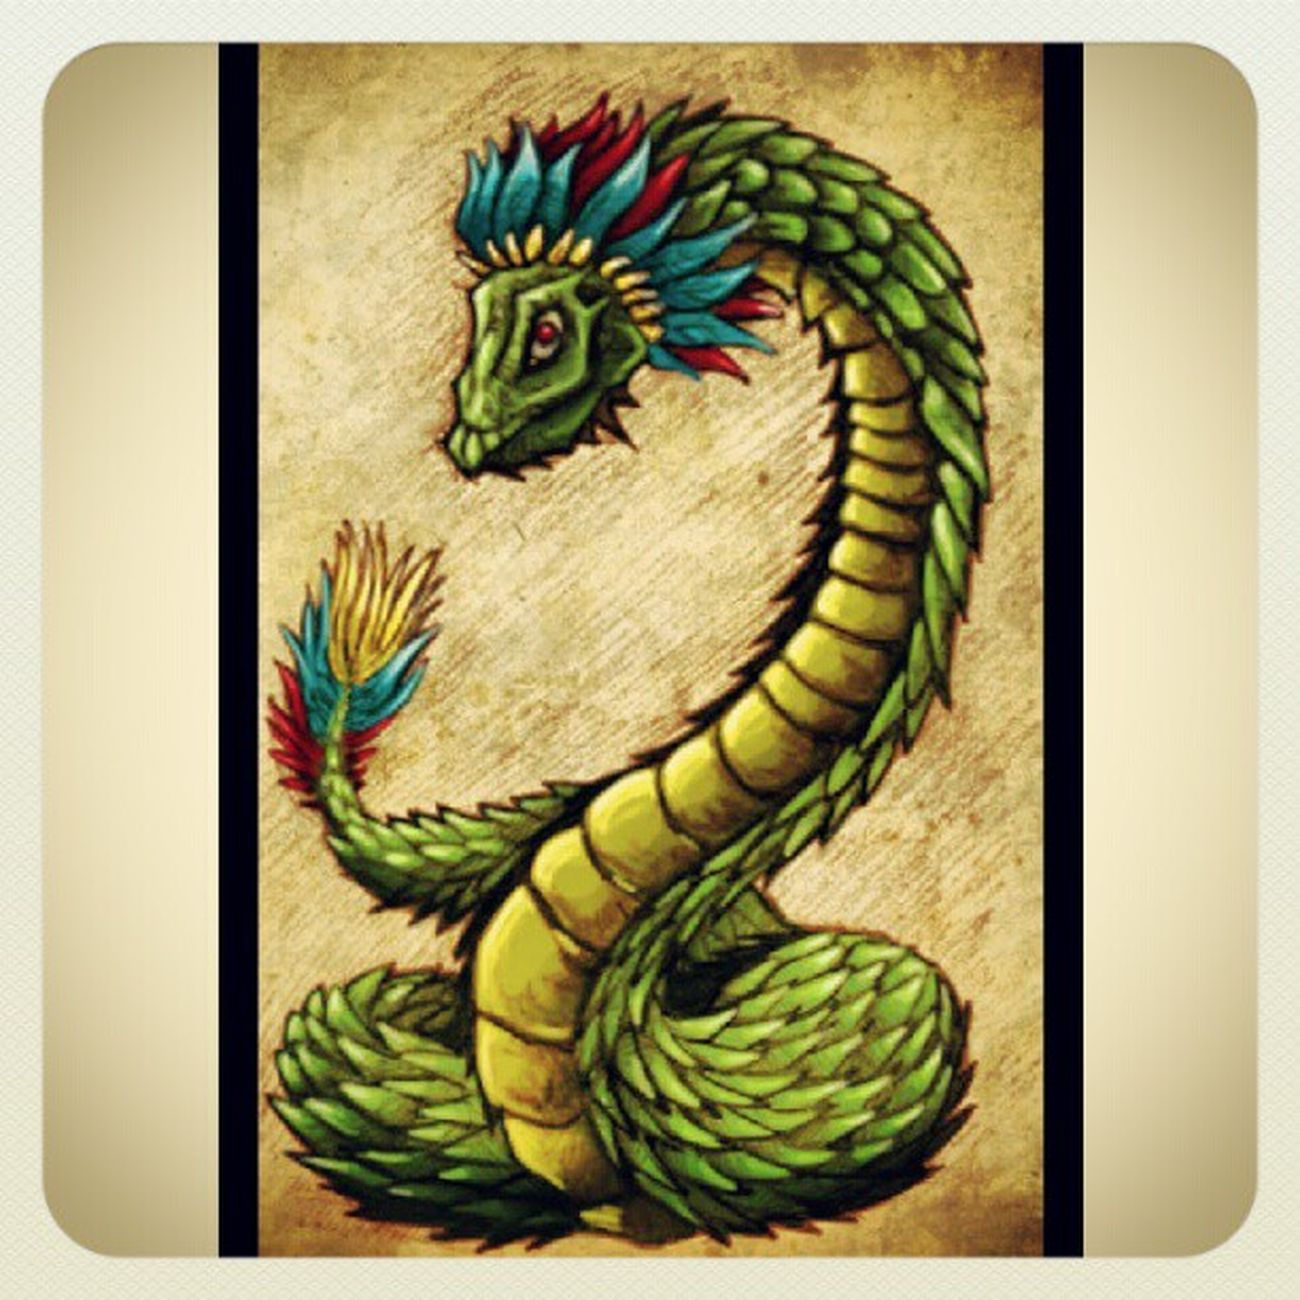 Here's my new tattoo idea half Quetzal half Snake DOPE @prezidentialswag what you think?